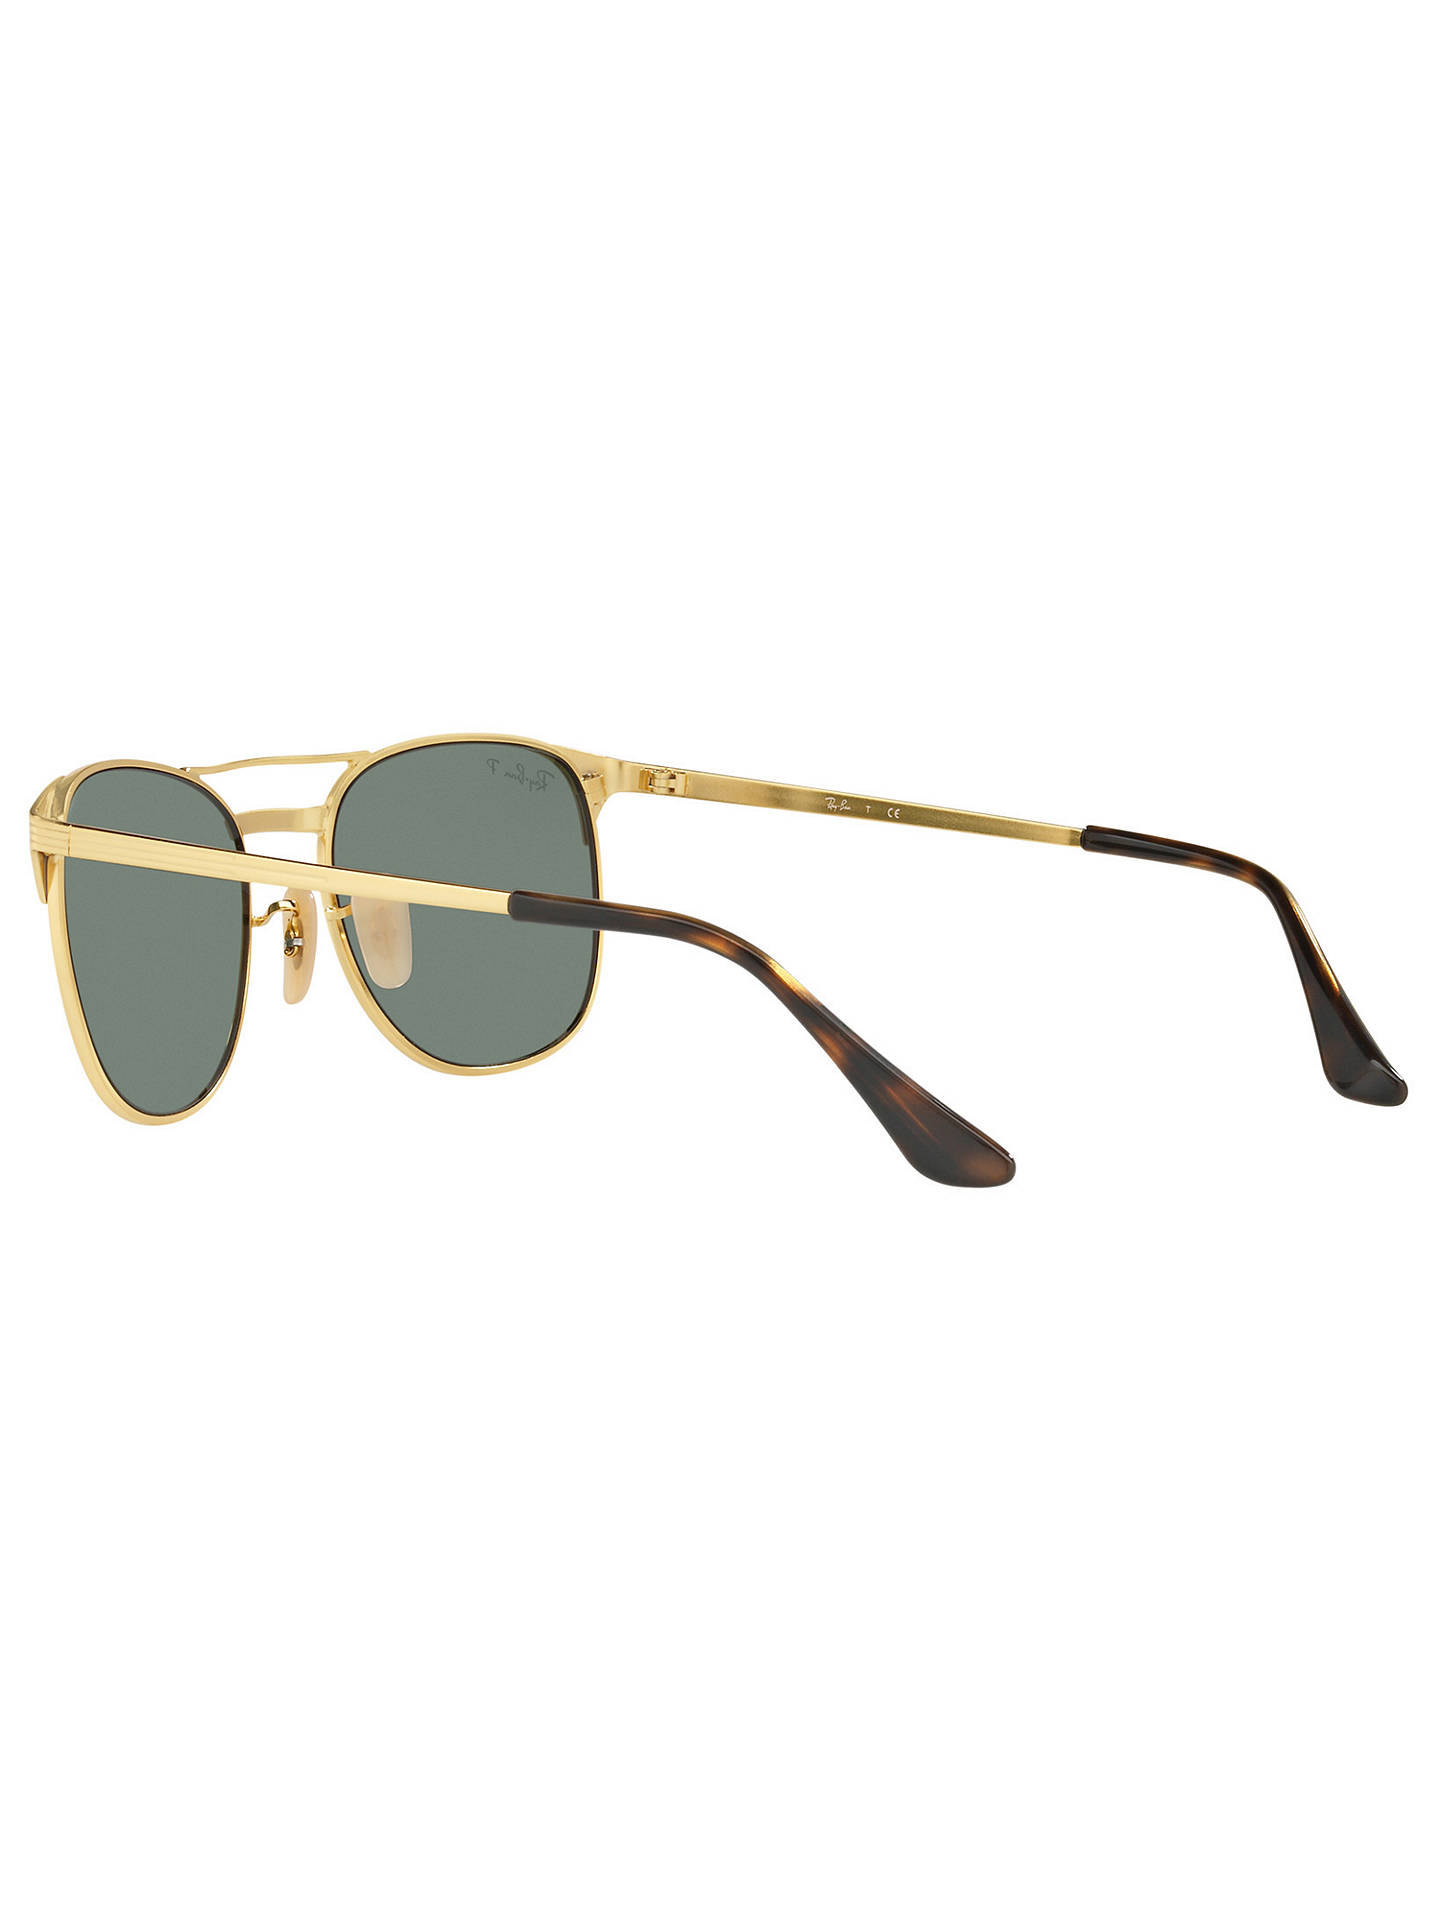 Buy Ray-Ban RB3429M Signet Polarised Square Sunglasses, Gold/Green Online at johnlewis.com